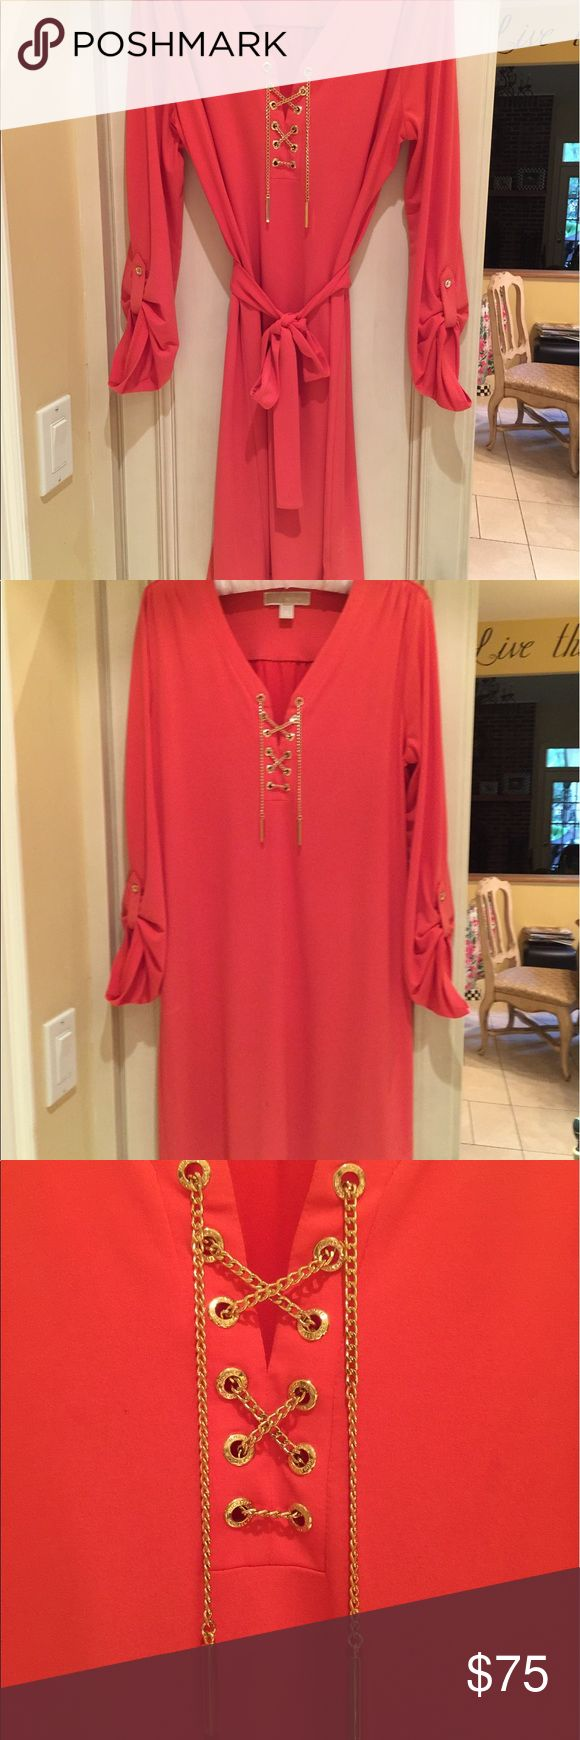 Michael Kors dress Beautiful worn once Micheal Kors orange dress size medium, no signs of wear, polyester with spandex can be worn belted or not. Perfect with leggings or just as a dress. Michael Kors Dresses Mini